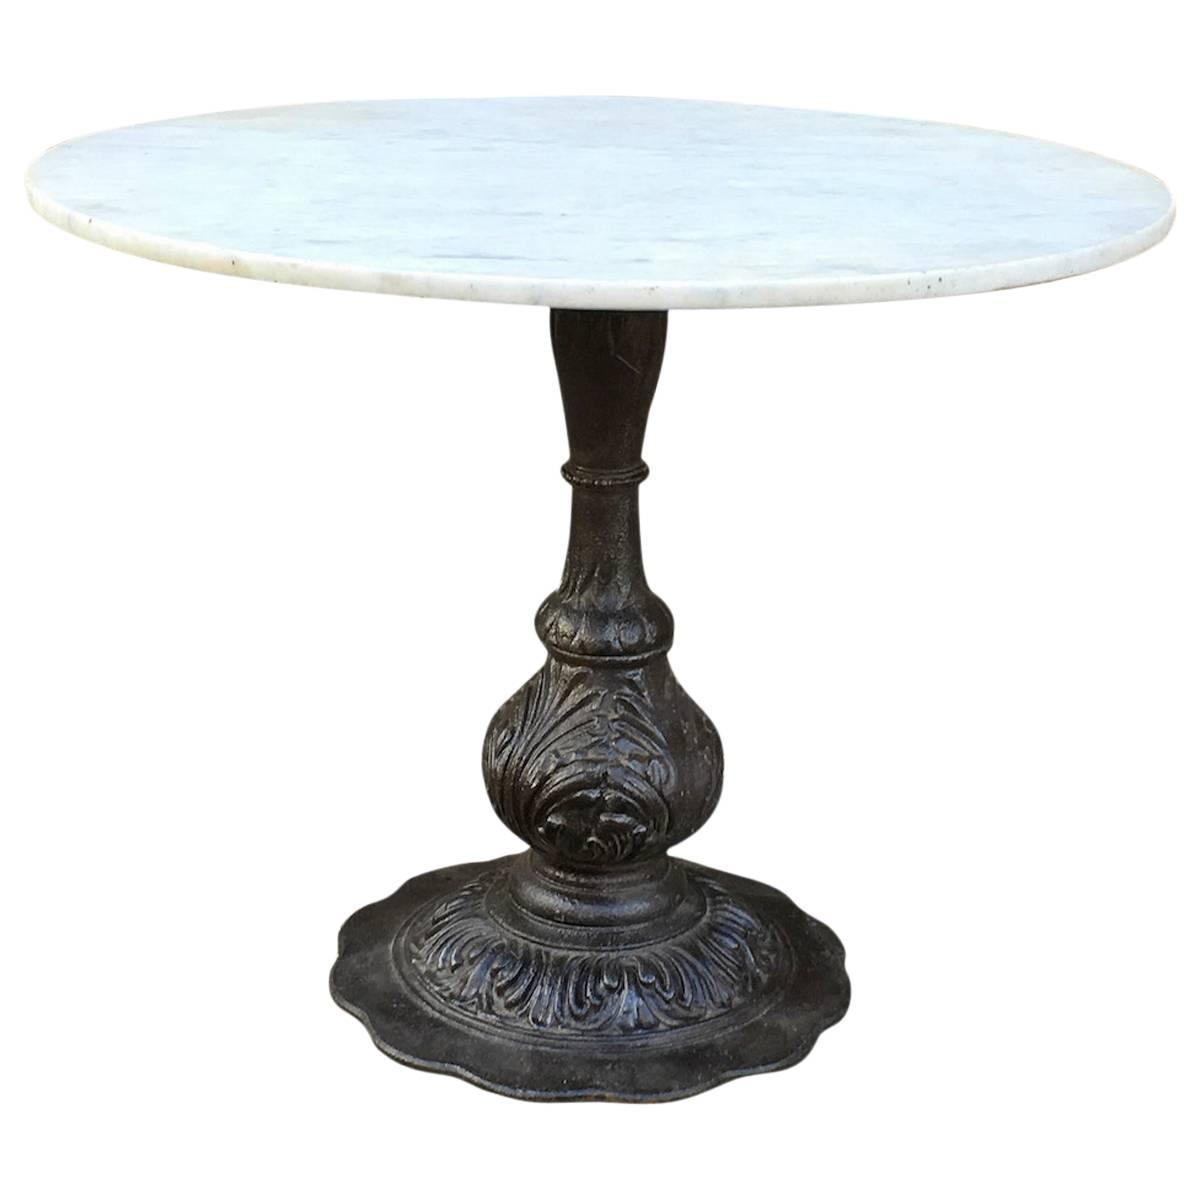 Marble Dining Table with Ornate Cast Iron Base at 1stdibs : 4374163z from www.1stdibs.com size 1200 x 1200 jpeg 47kB